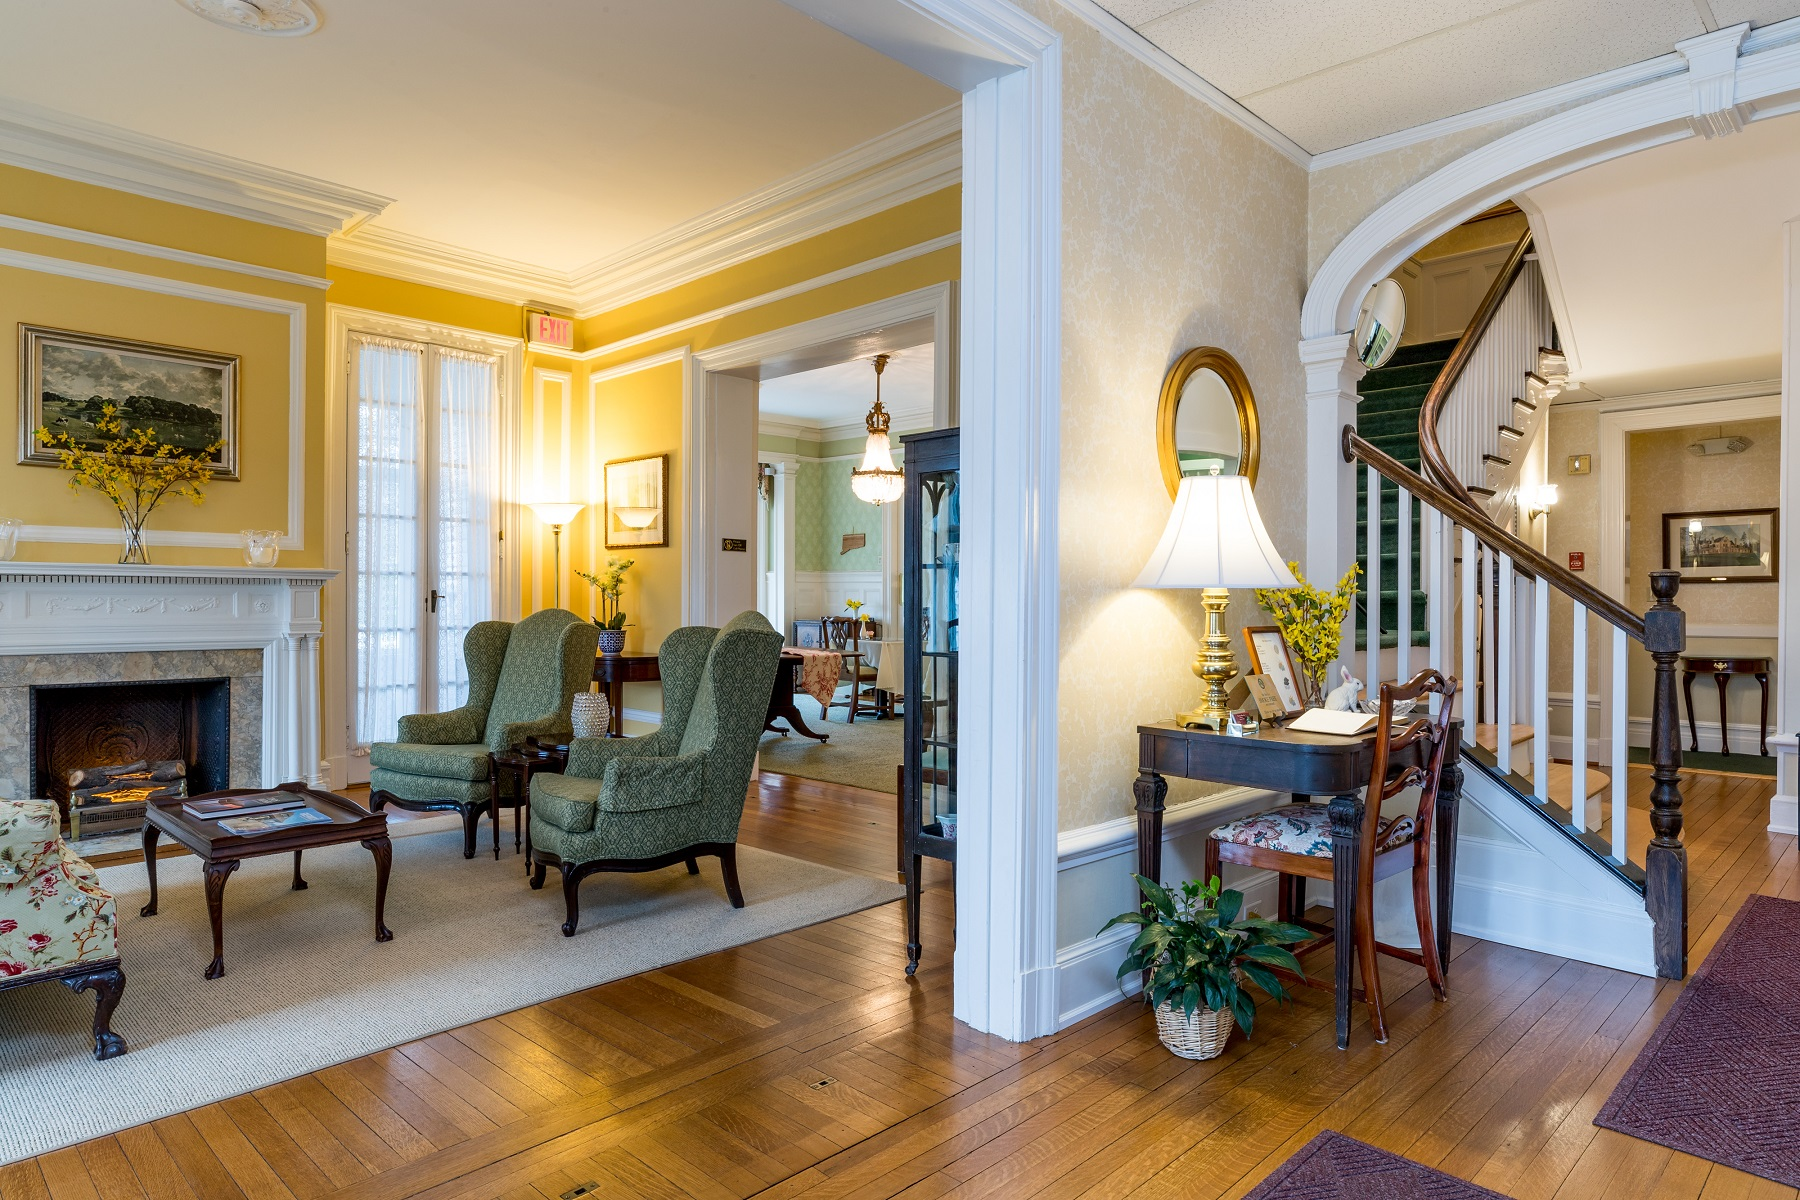 Common areas of the Stanton House Inn, a bed and breakfast inn in Greenwich, CT, include the front lobby, parlors and living rooms, and a dining room where breakfast is served each morning